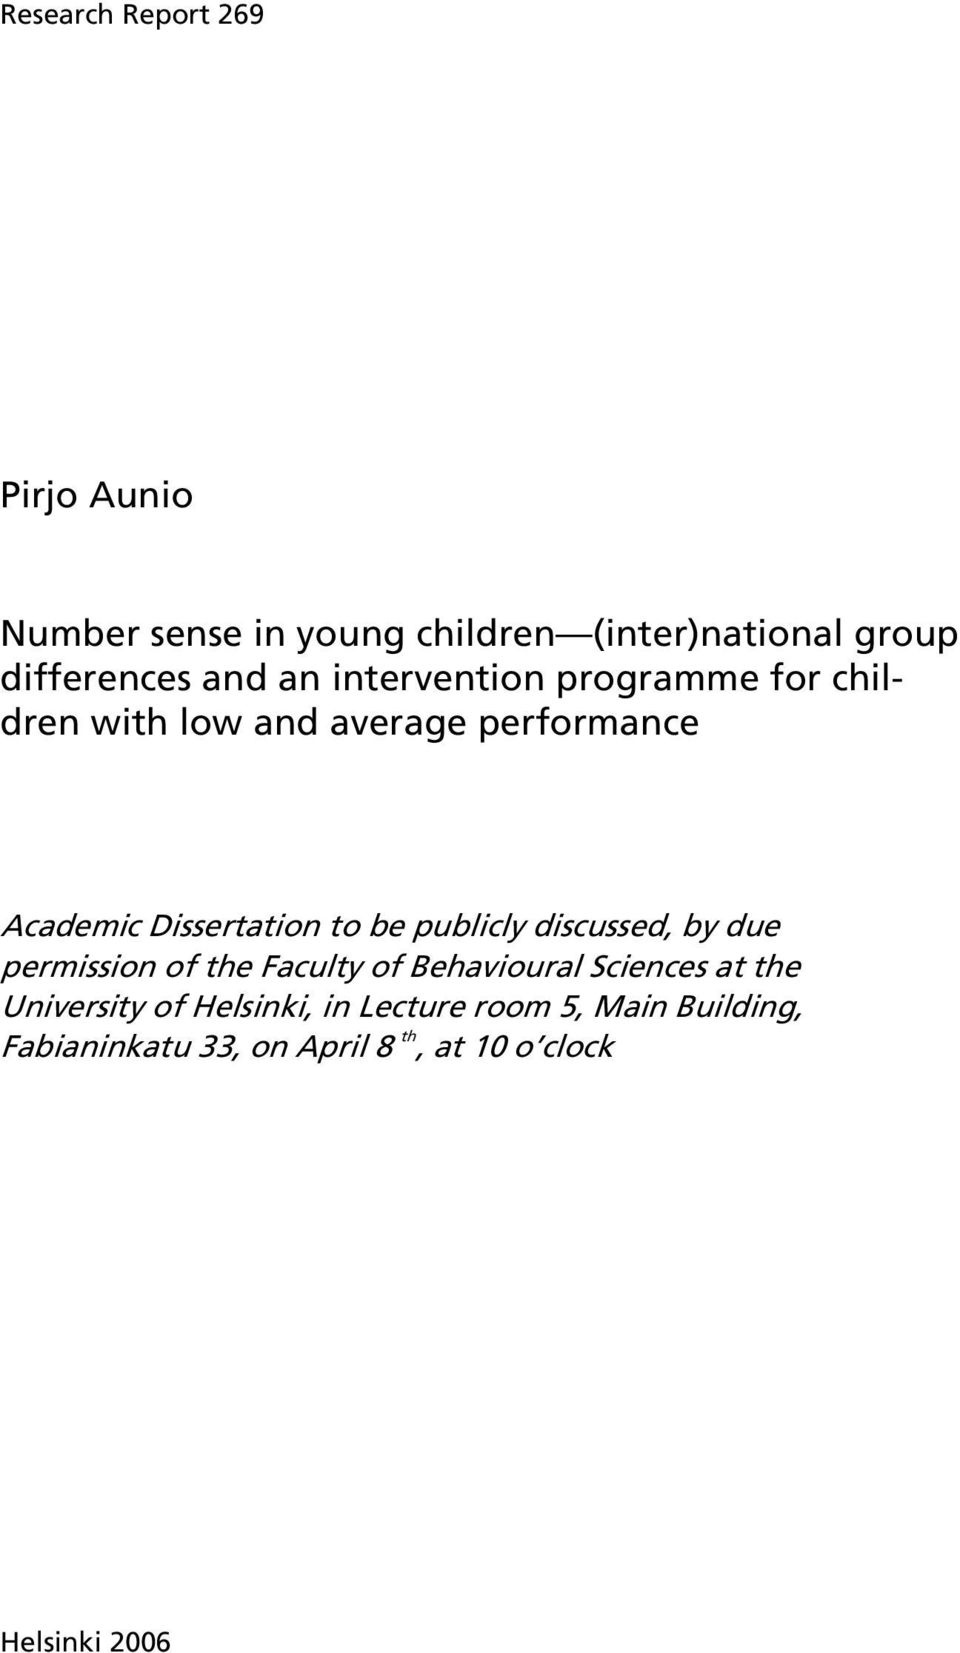 publicly discussed, by due permission of the Faculty of Behavioural Sciences at the University of